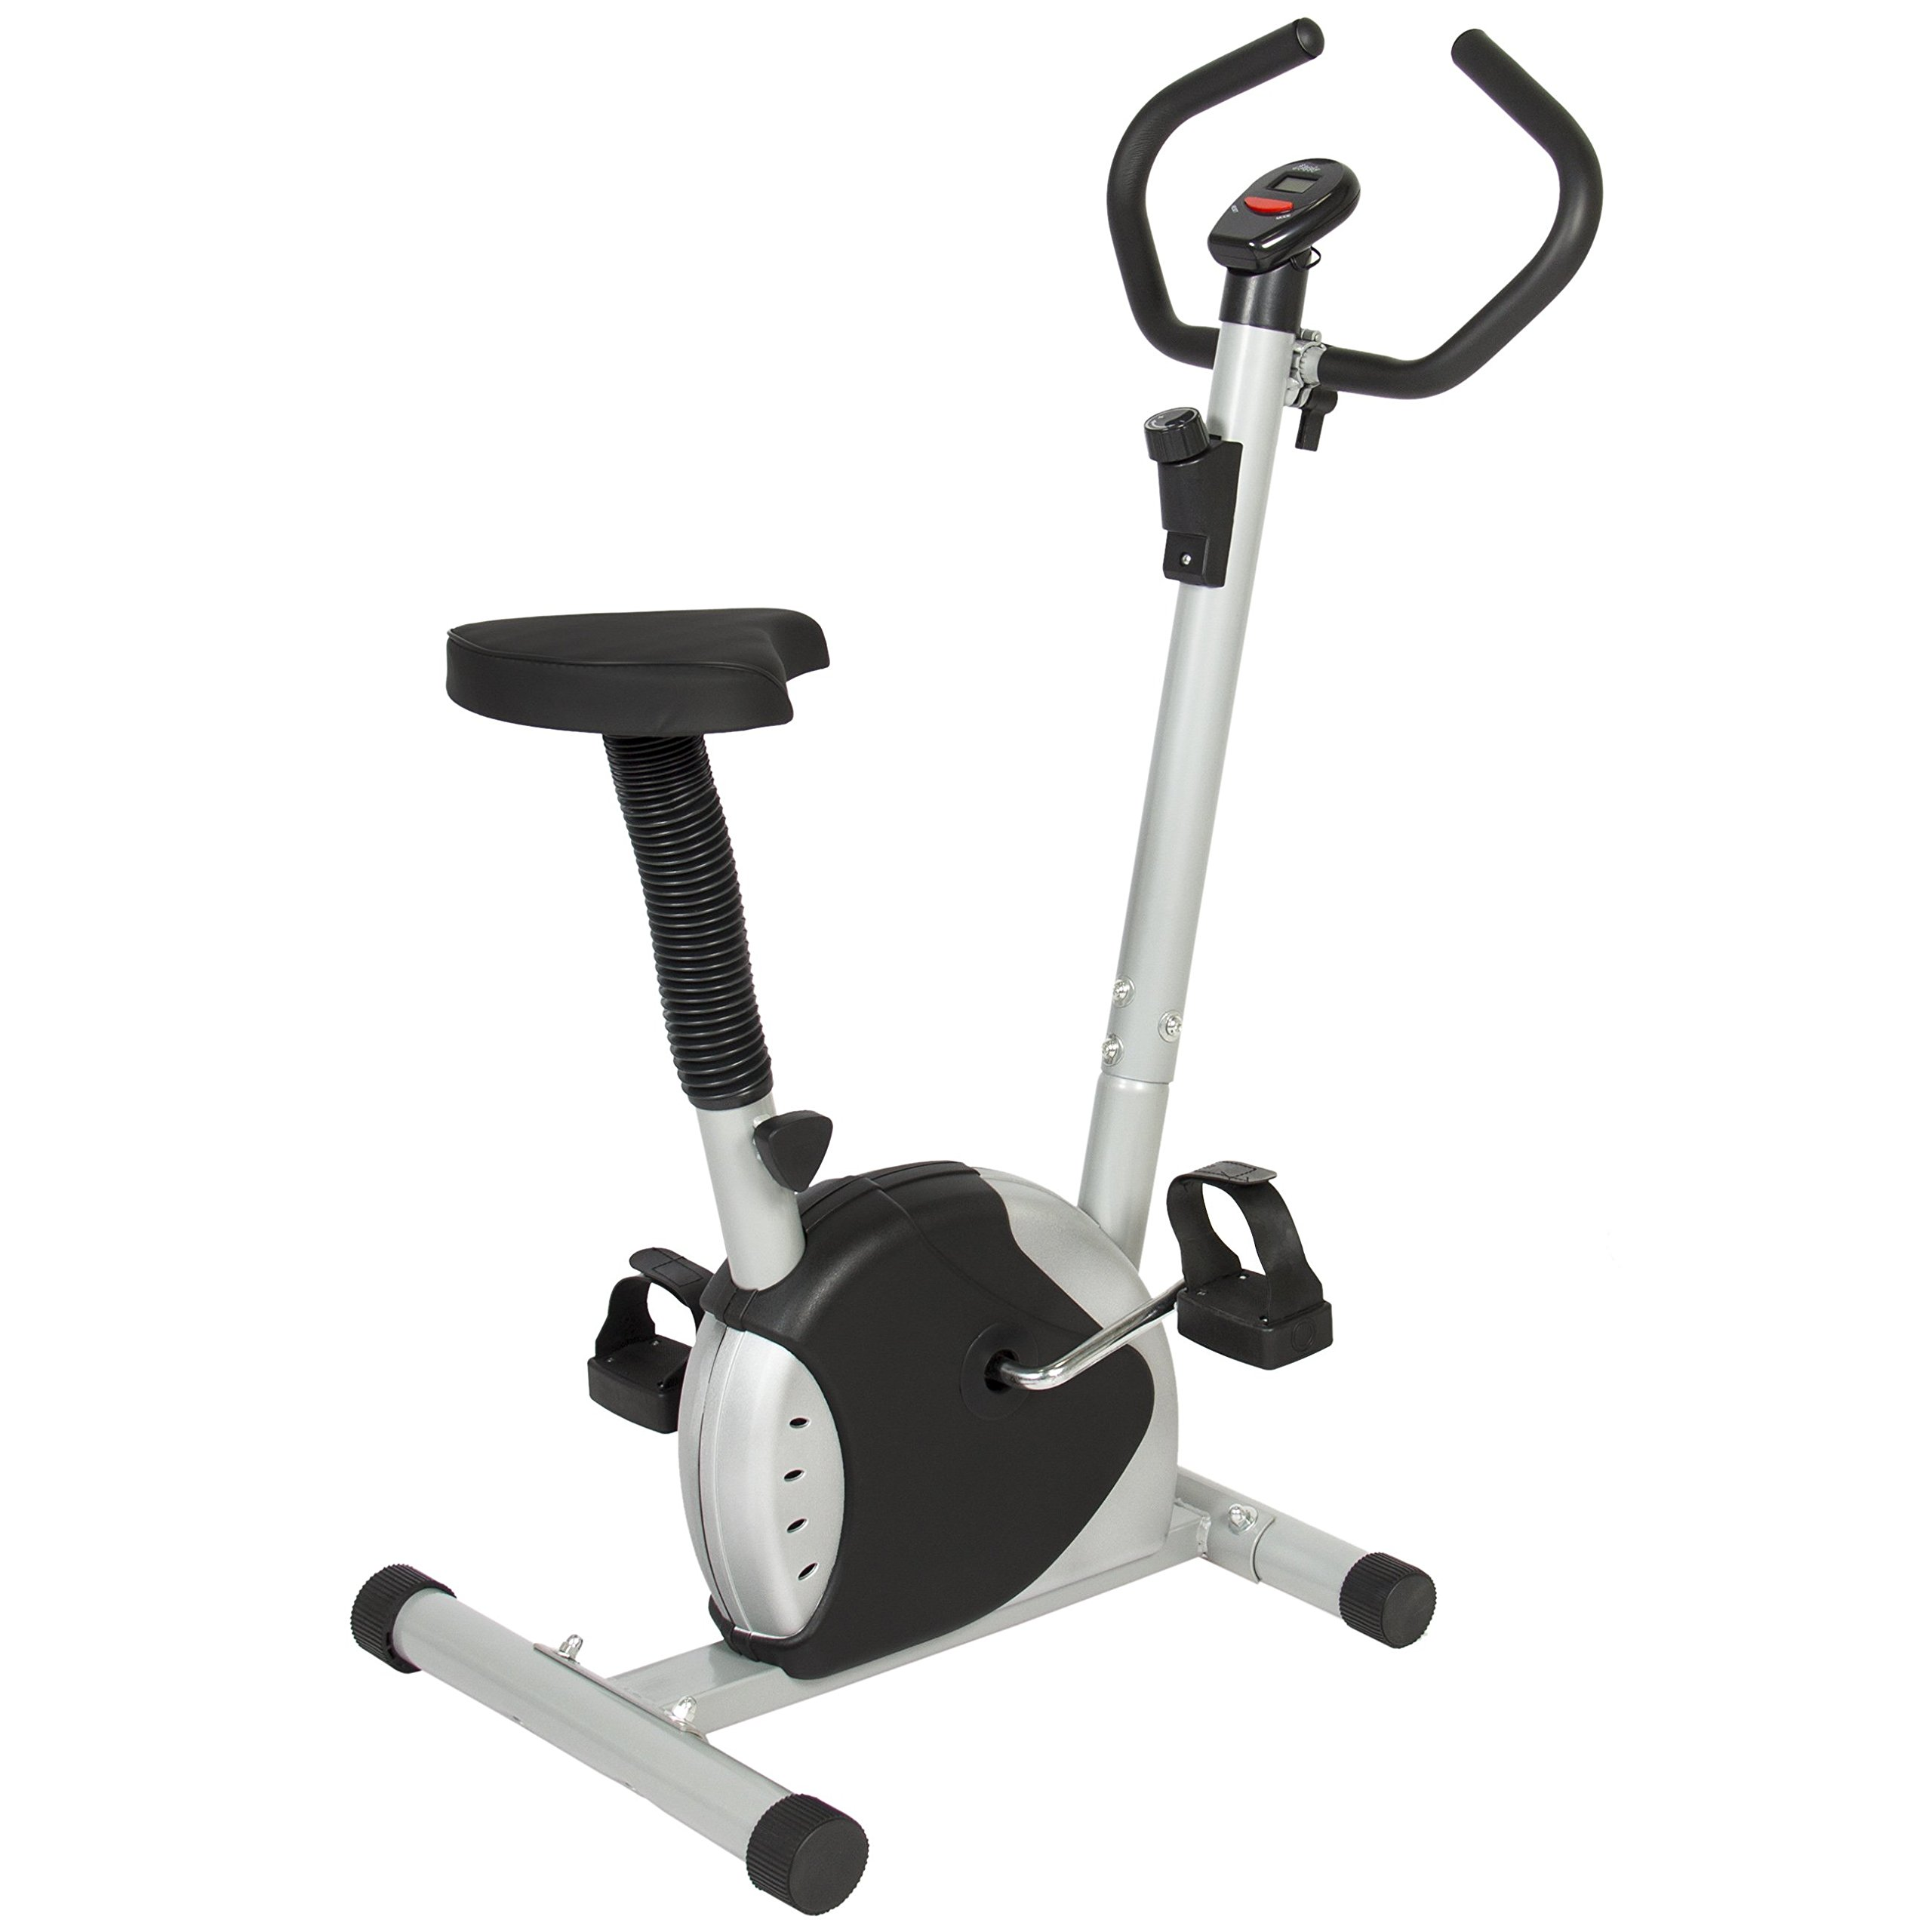 Best Choice Products Adjustable Exercise Bicycle Machine w/Resistance Adjustment - Black/Silver